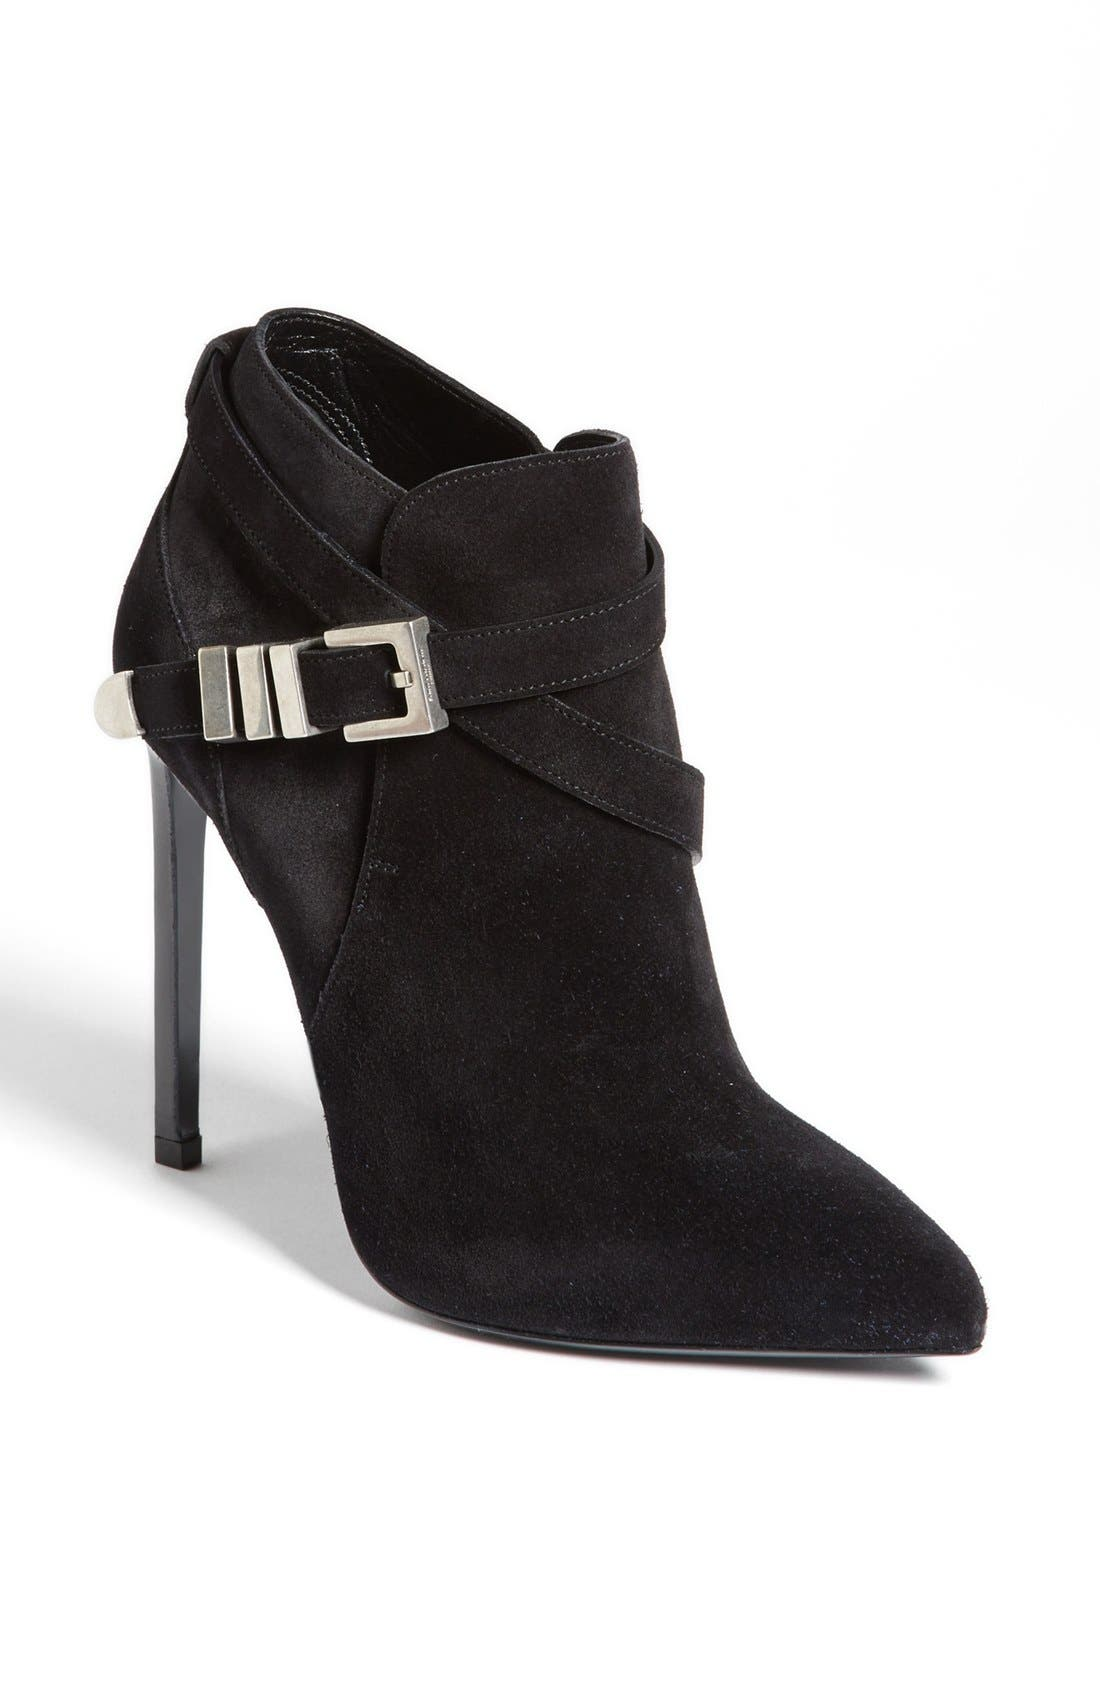 SAINT LAURENT,                             'Paris' Buckle Bootie,                             Main thumbnail 1, color,                             001